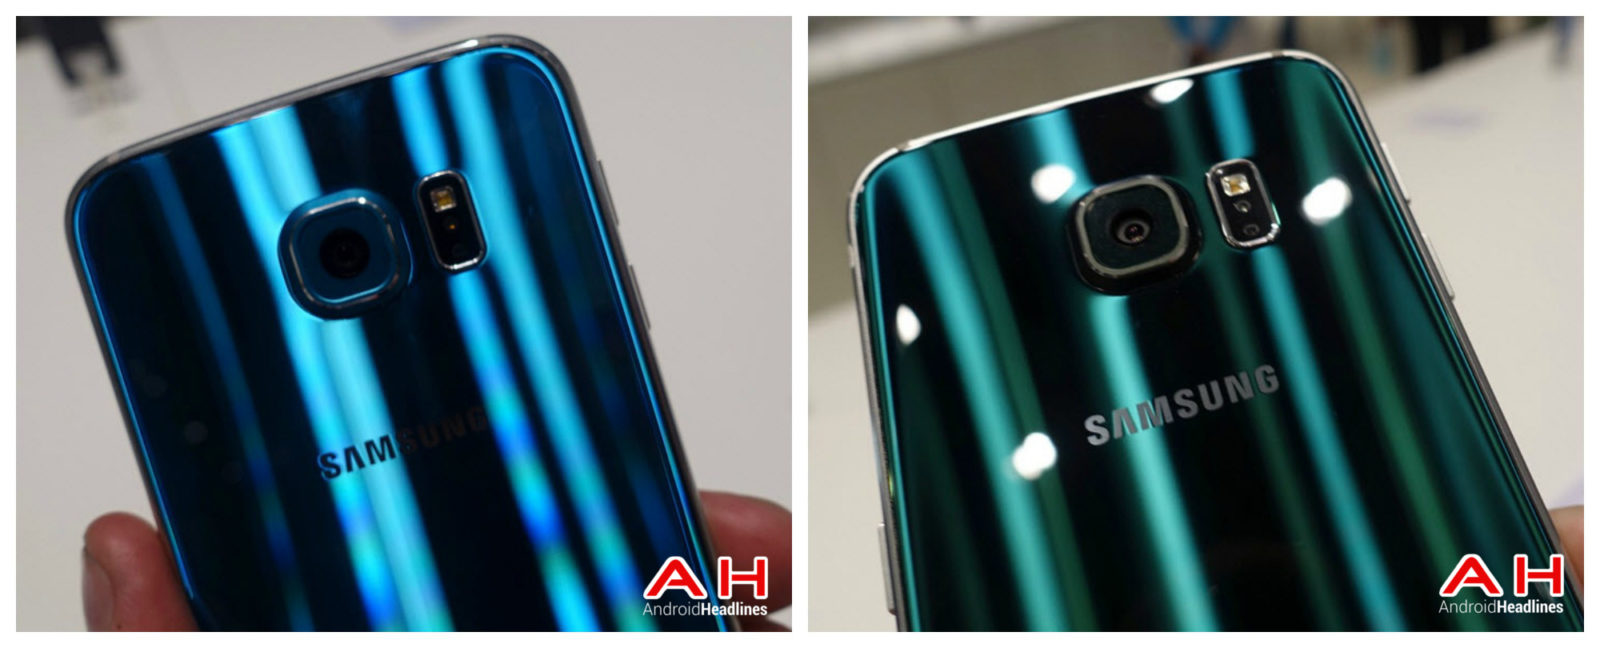 S6 Blue S6 Edge Green Collage cam AH